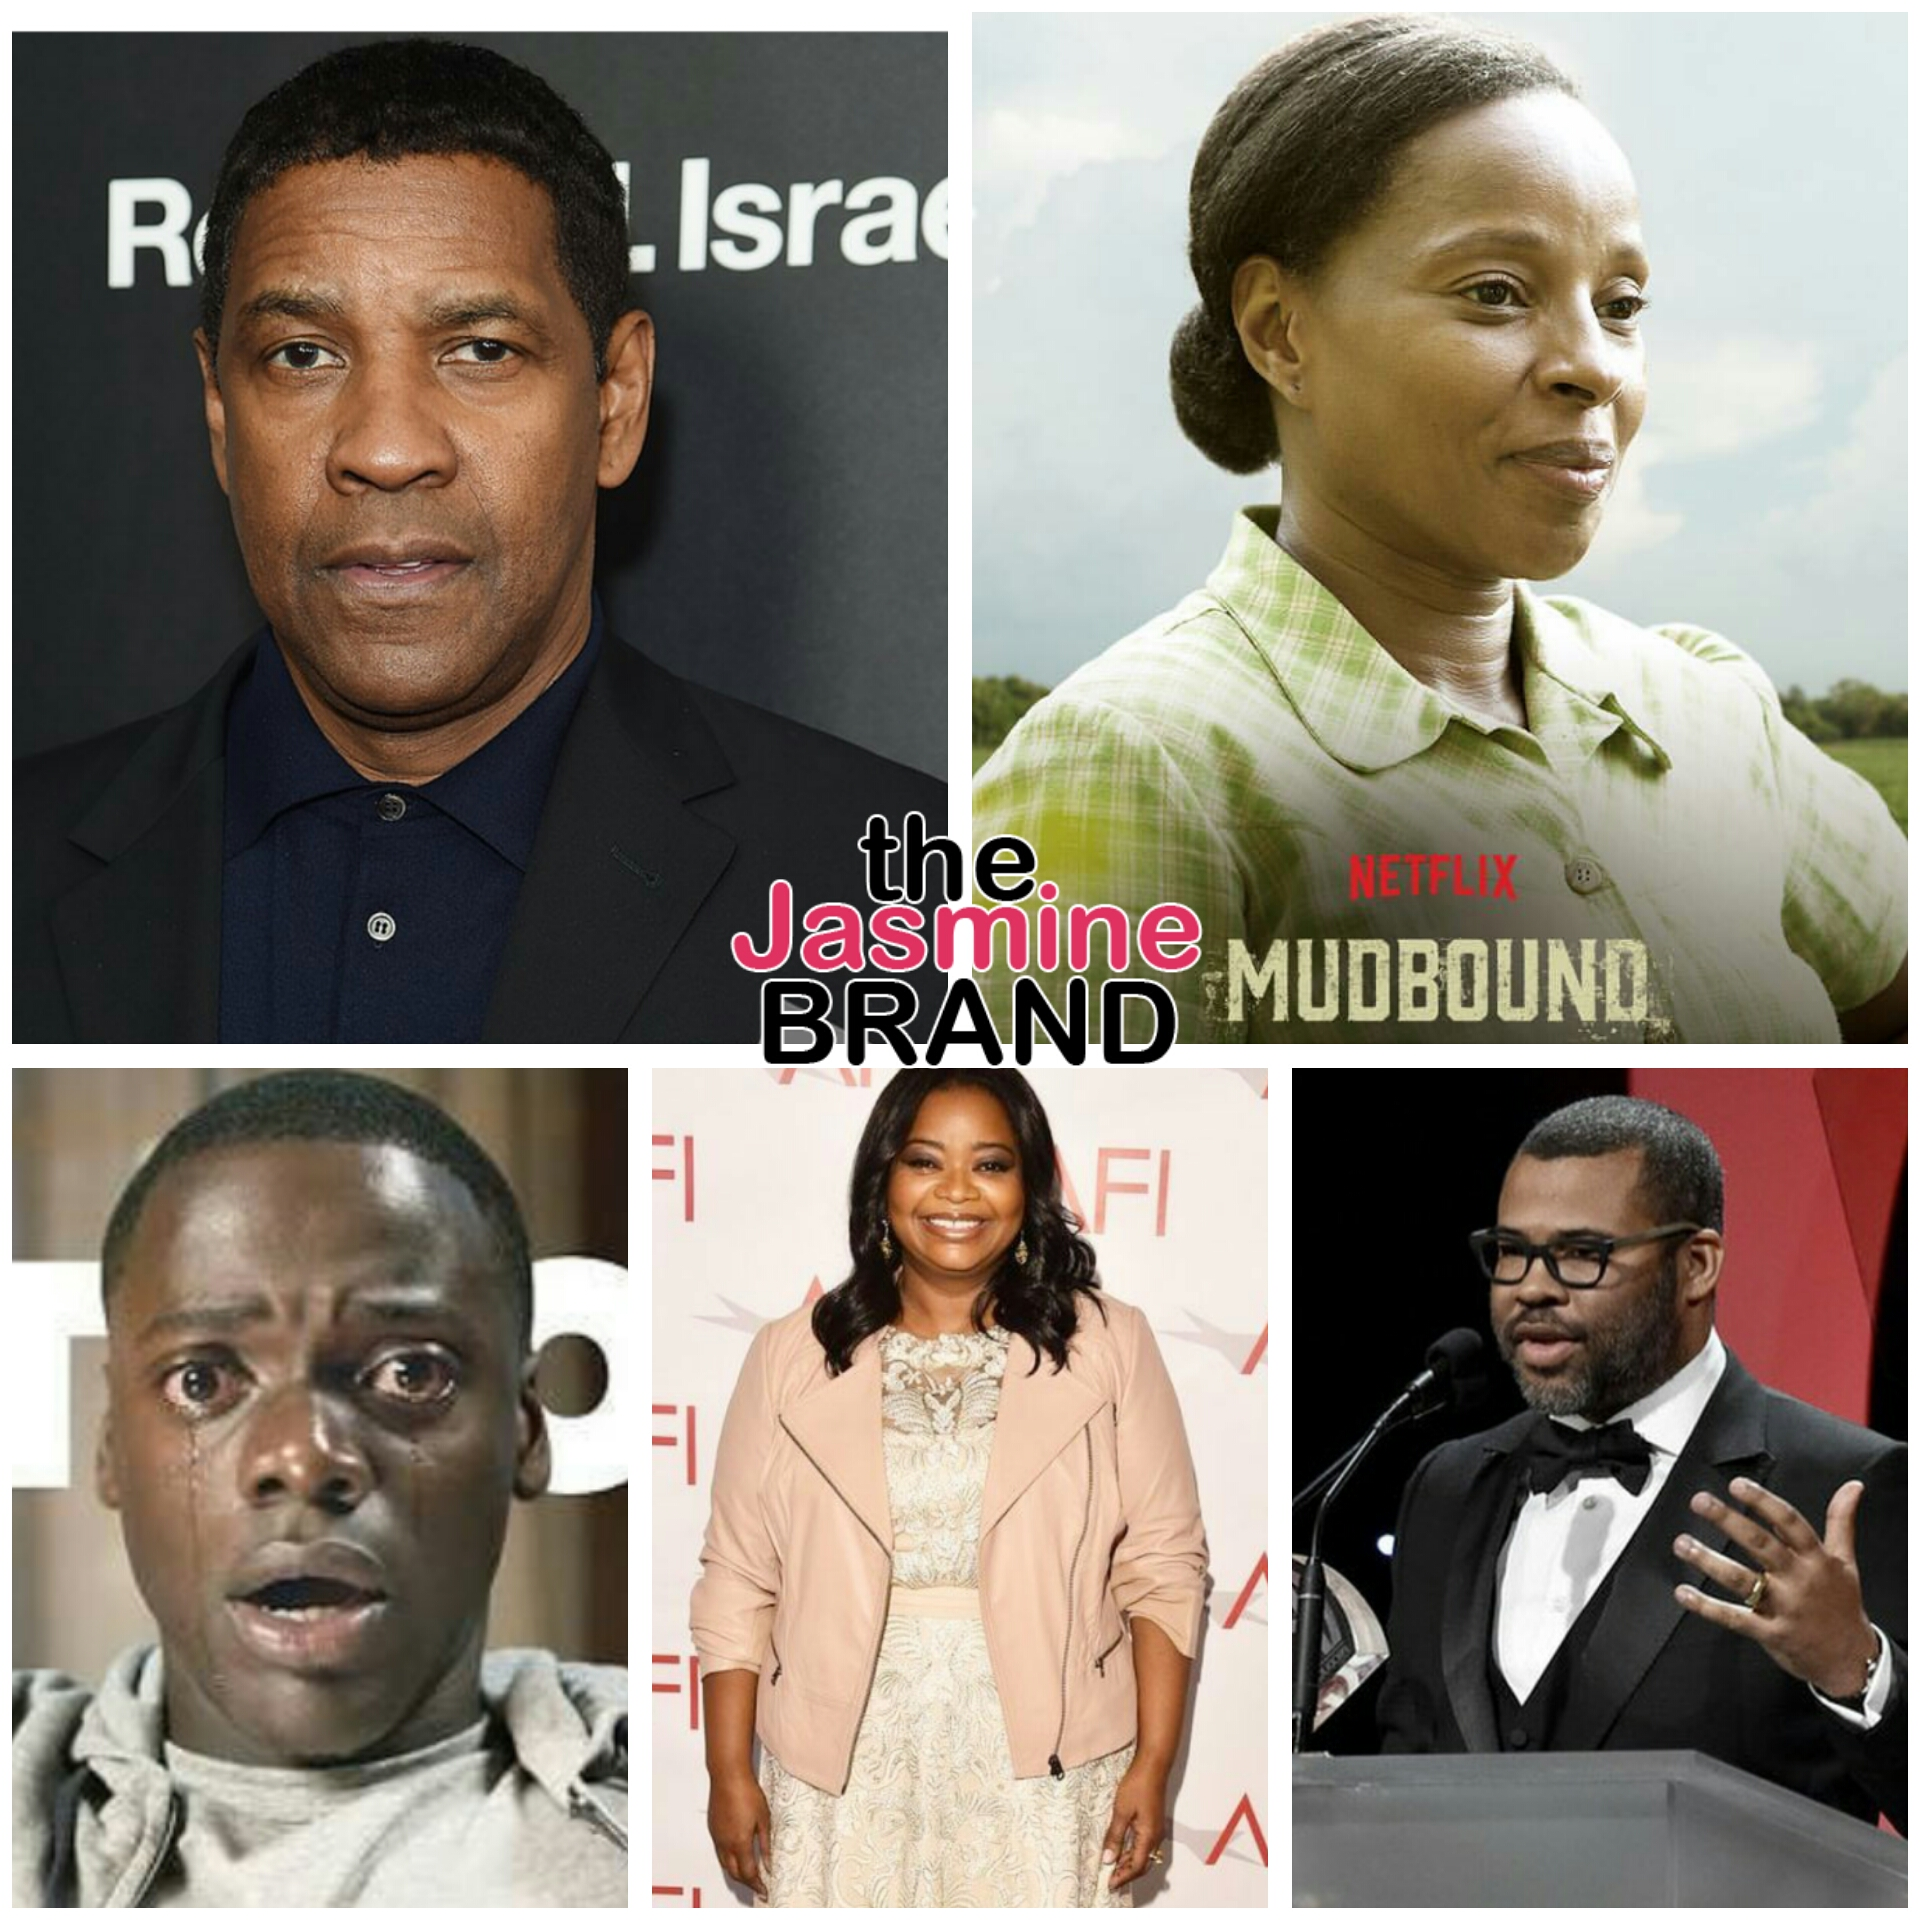 Oscar Nominations - Mary J. Blige, Octavia Spencer, Denzel Washington, Jordan Peele, Daniel Kaluuya, Dee Reese, 'Get Out', 'Mudbound' Nominated + Complete List